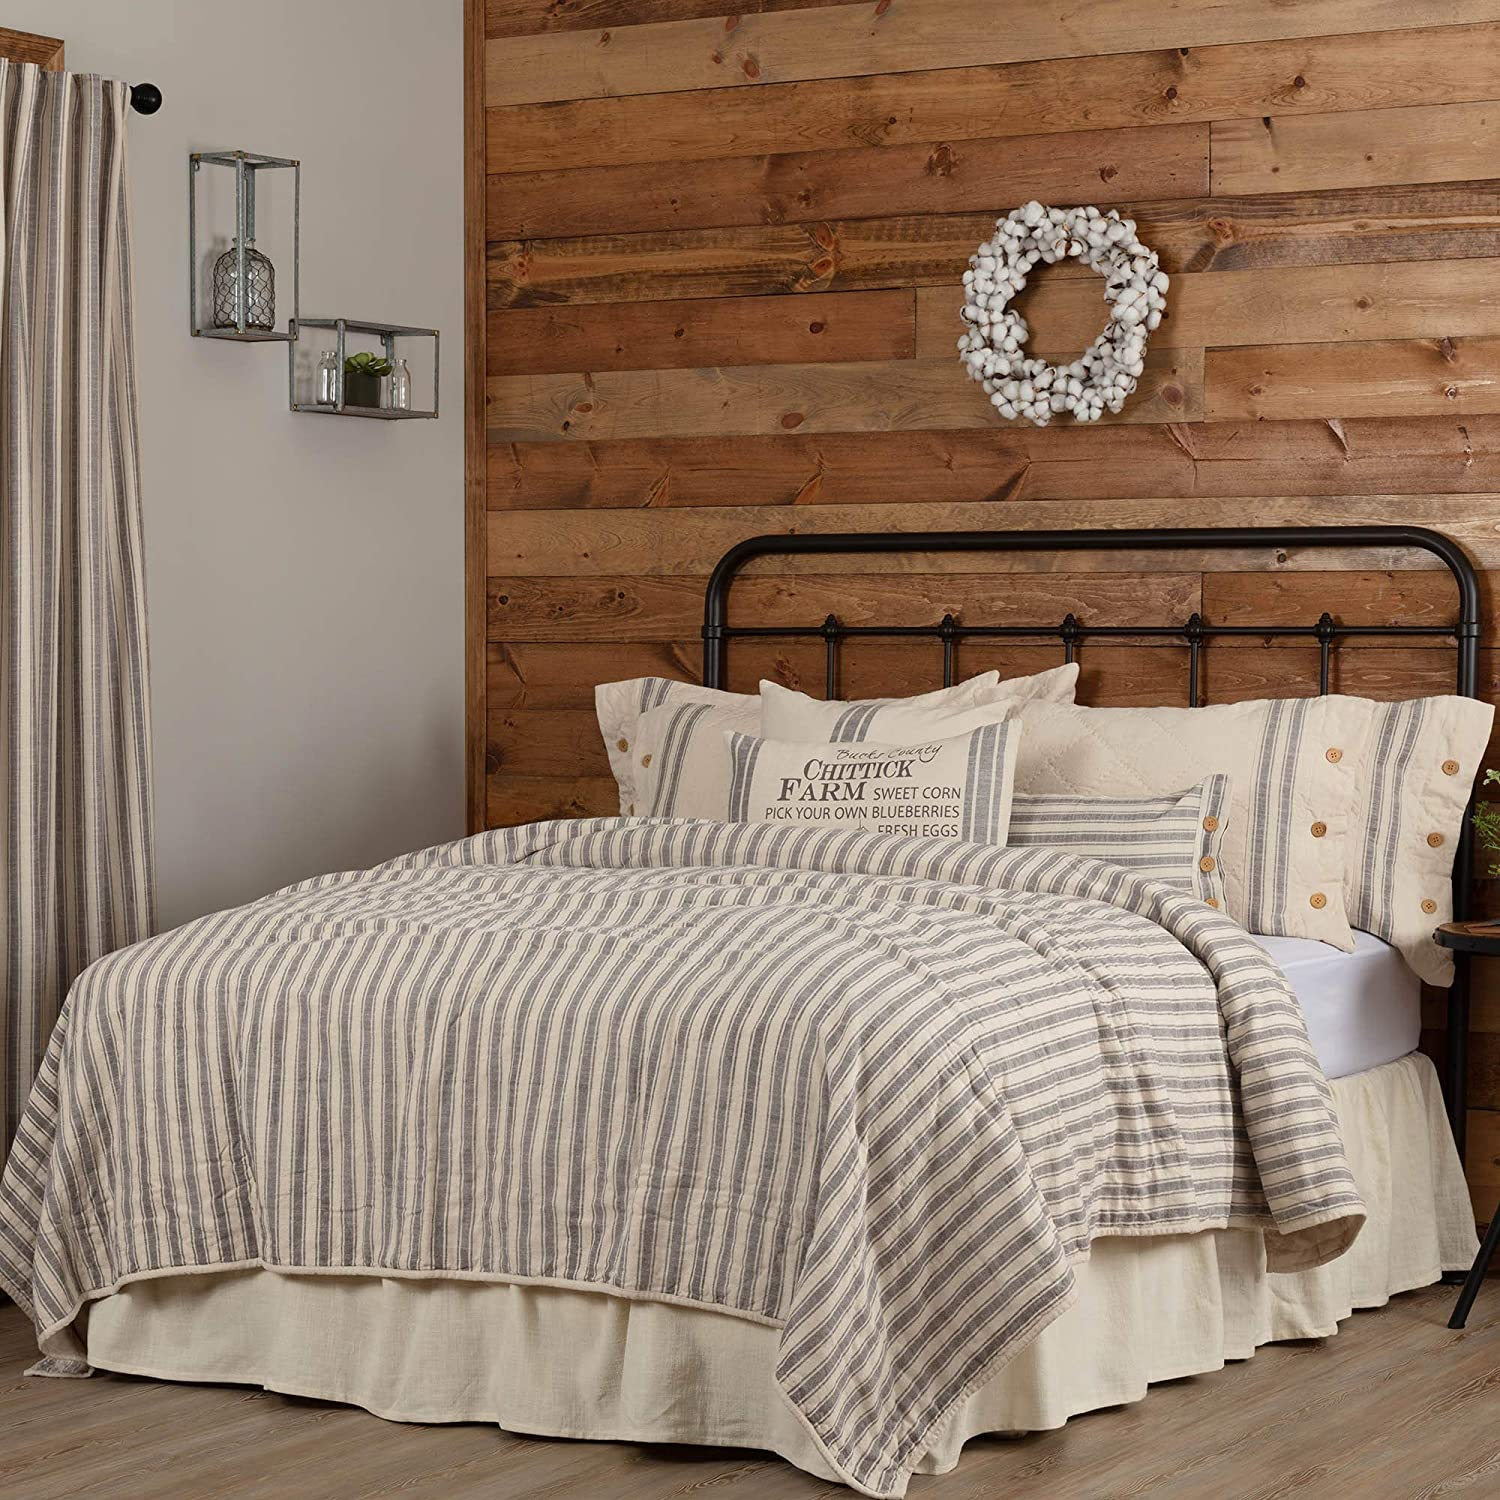 "Piper Classics Market Place Gray Ticking Stripe Quilt, Luxury King, 105"" x 120"", Oversized, Gray & Cream Quilted Farmhouse Style Bedding"